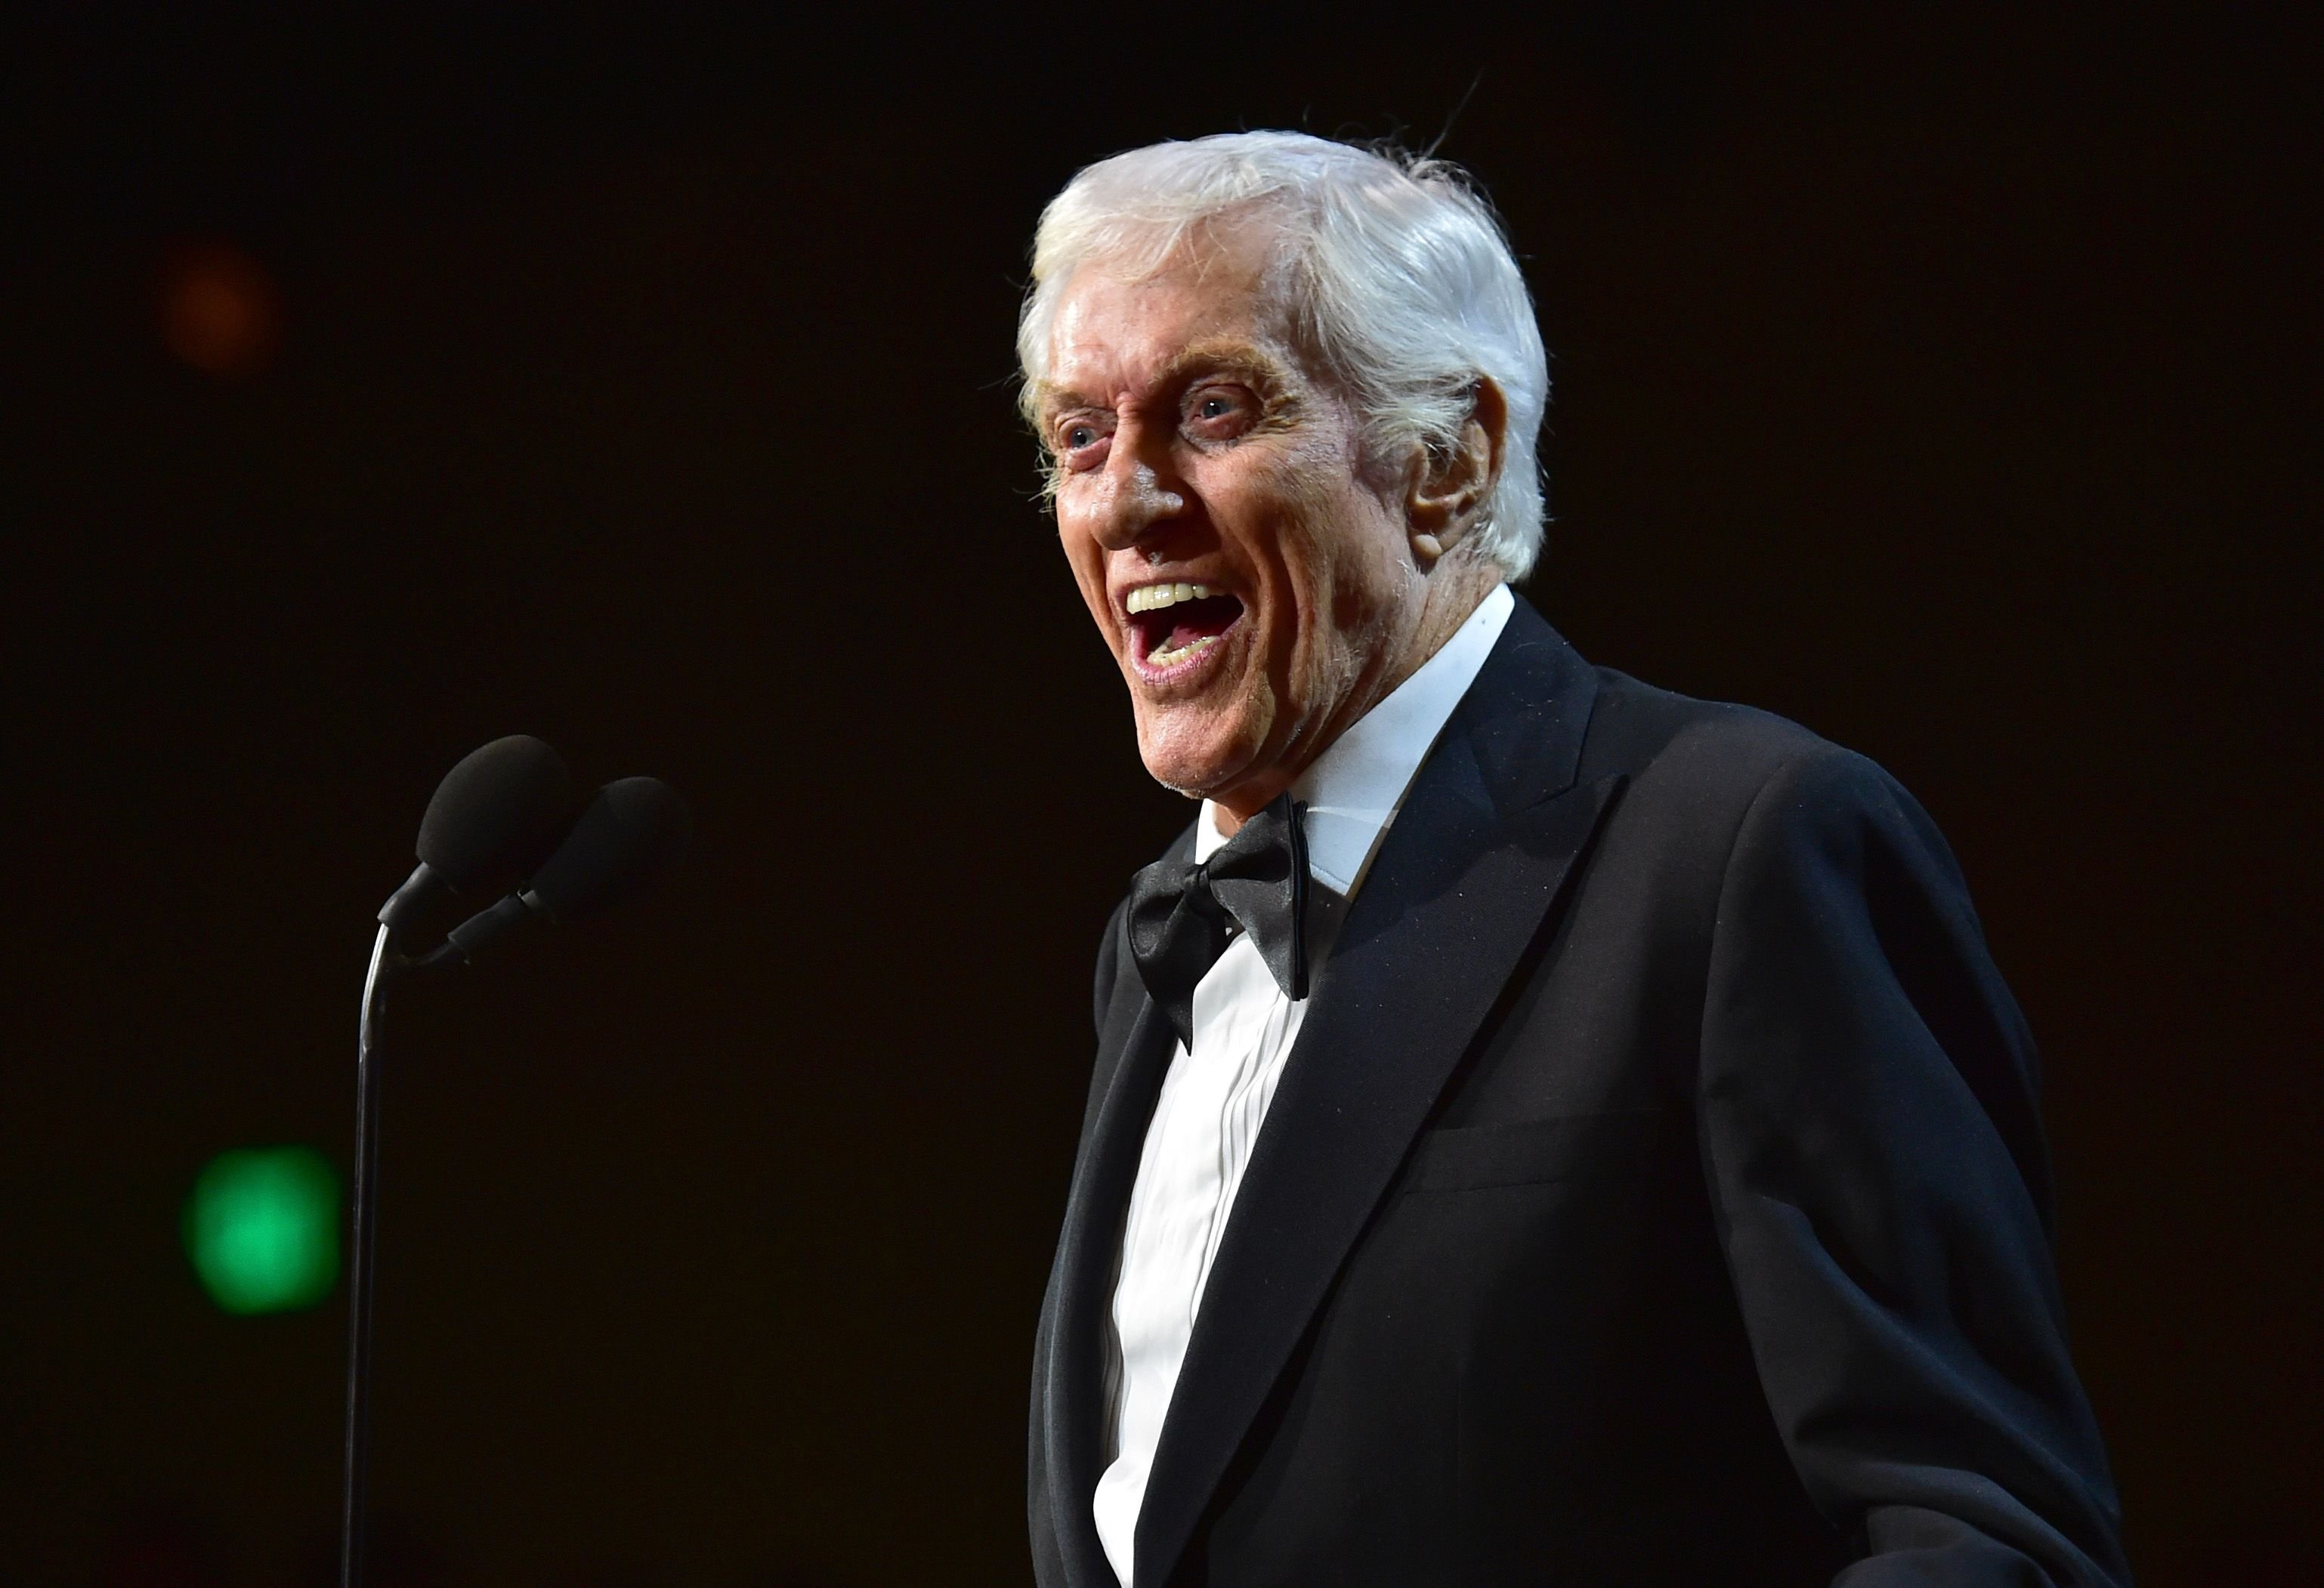 Dick Van Dyke accepts the Britannia Award for Excellence in Television at the 2017 AMD British Academy Britannia Awards at The Beverly Hilton Hotel on October 27, 2017 in California. | Photo: Getty Images